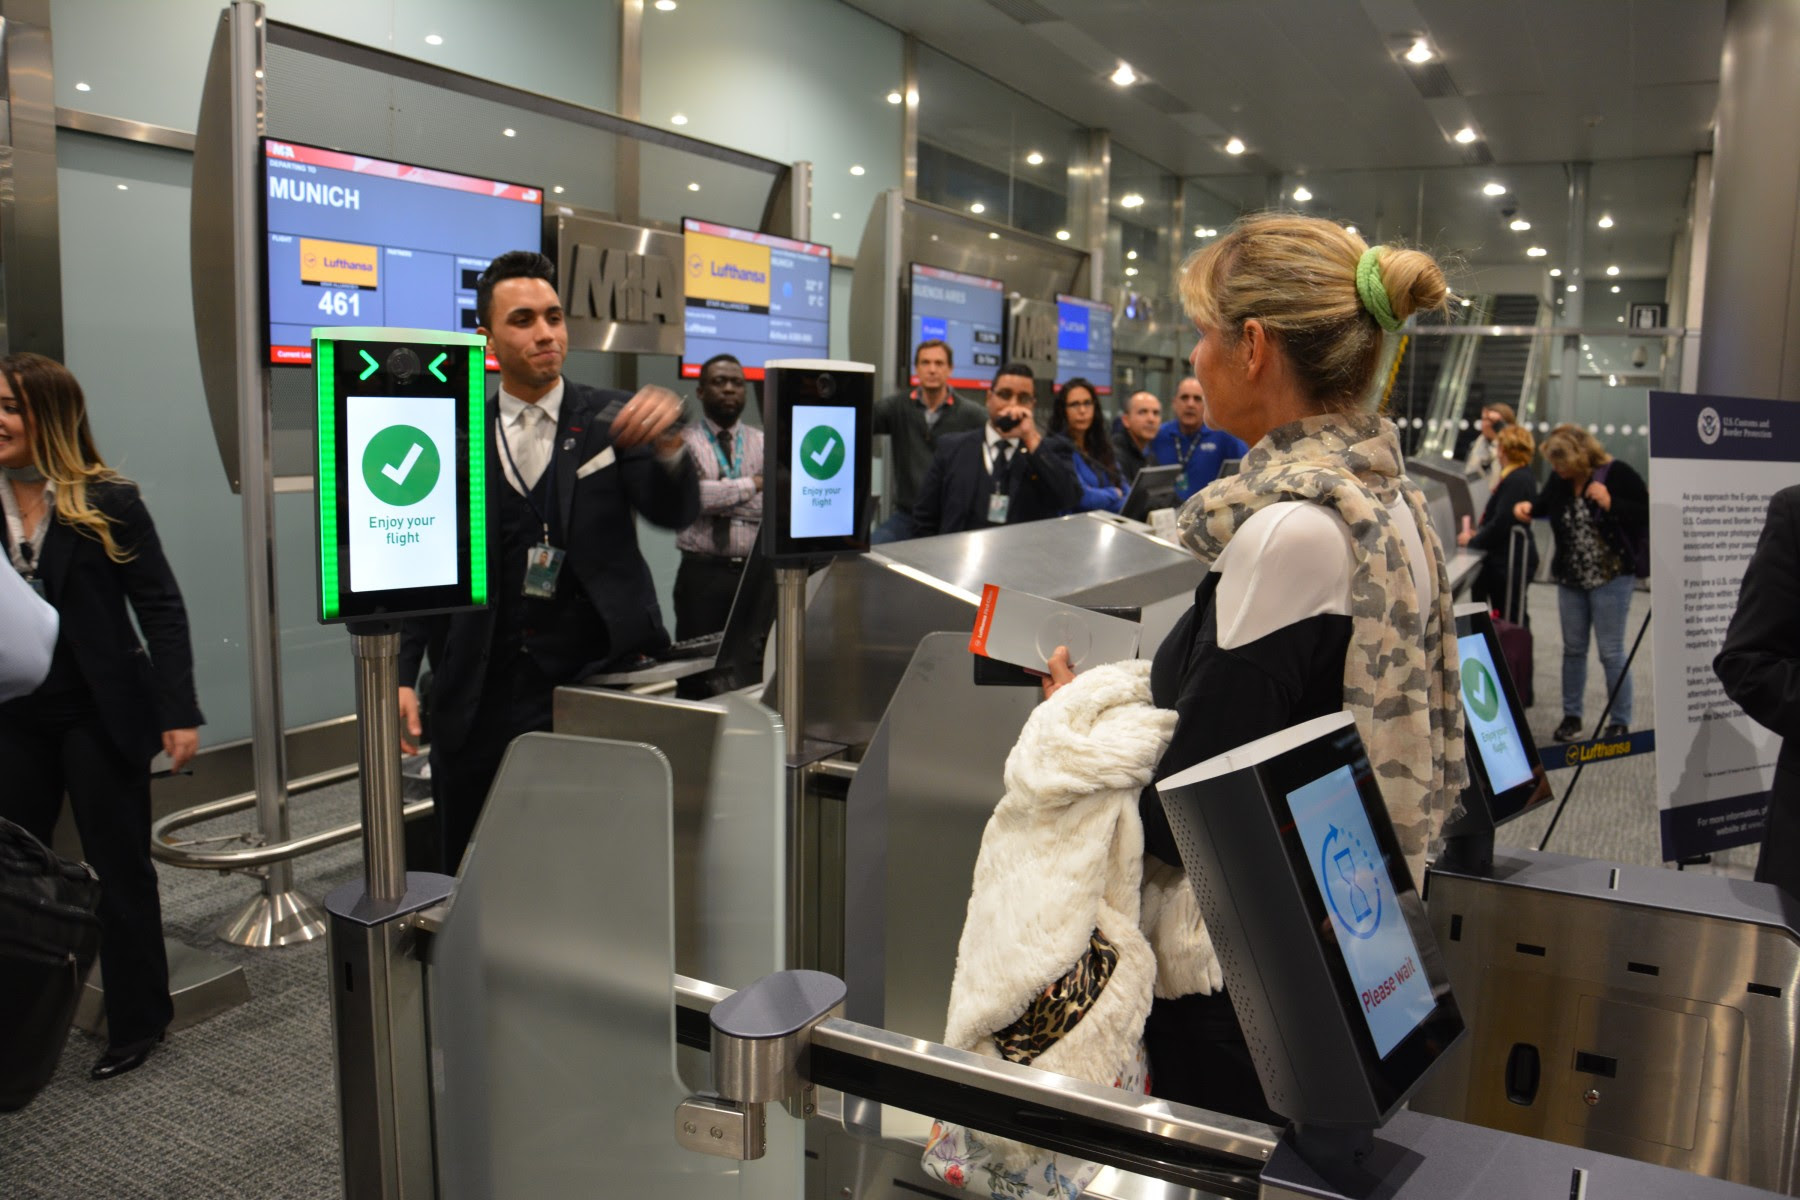 Biometric boarding gates launched at Miami Airport - Passenger